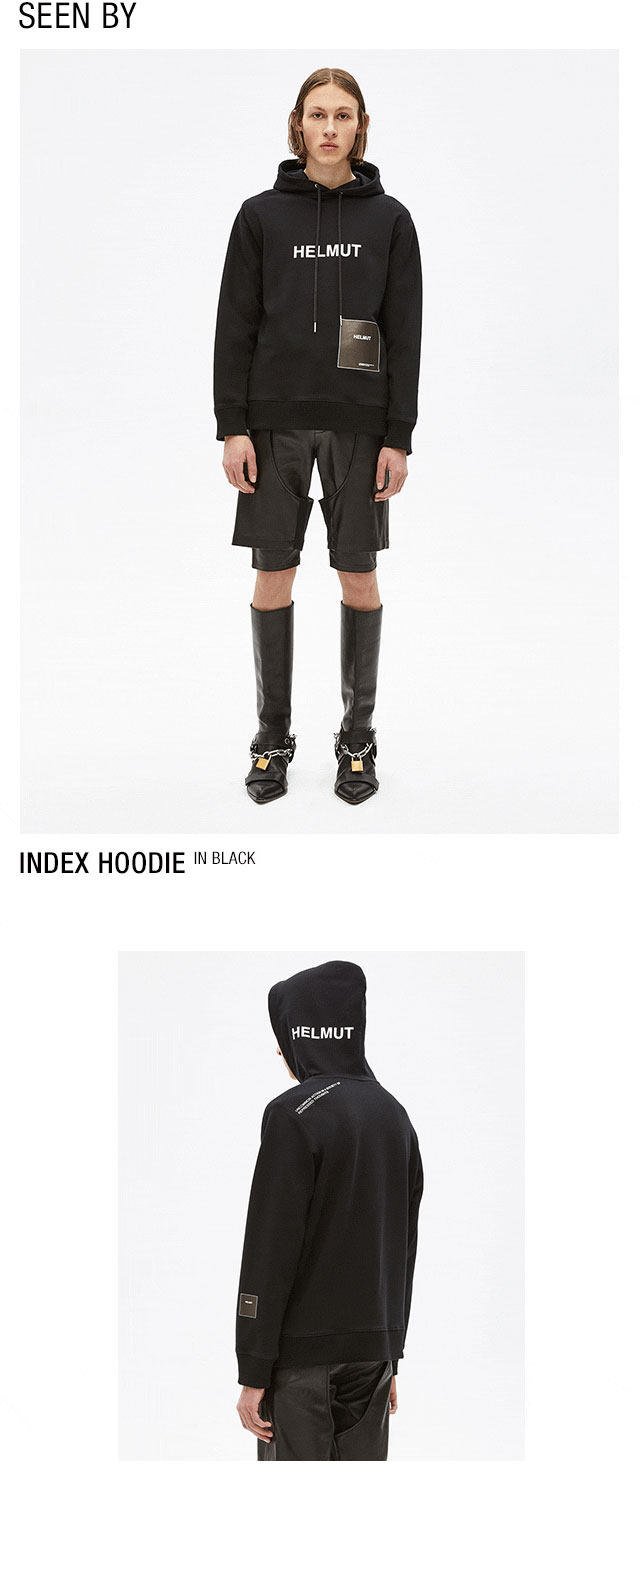 HELMUT LANG seen by Shayne Oliver Index Hoodie - Black